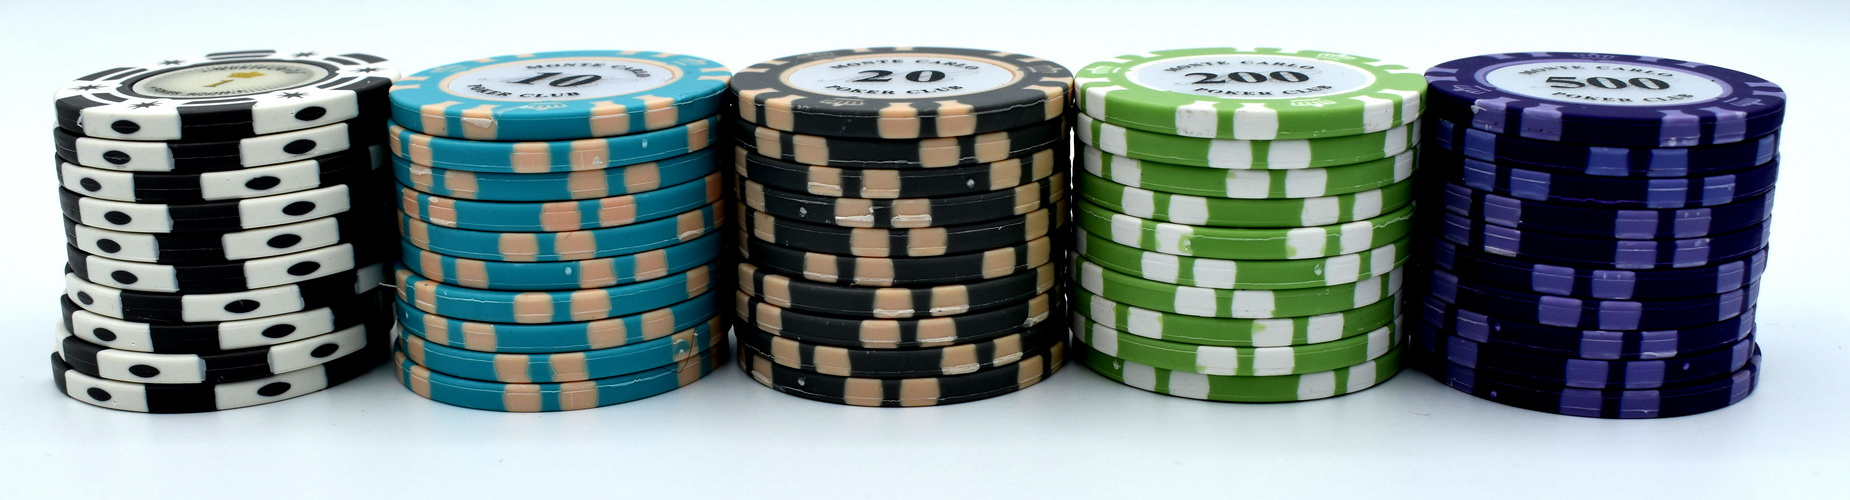 Free rupees to play poker in India